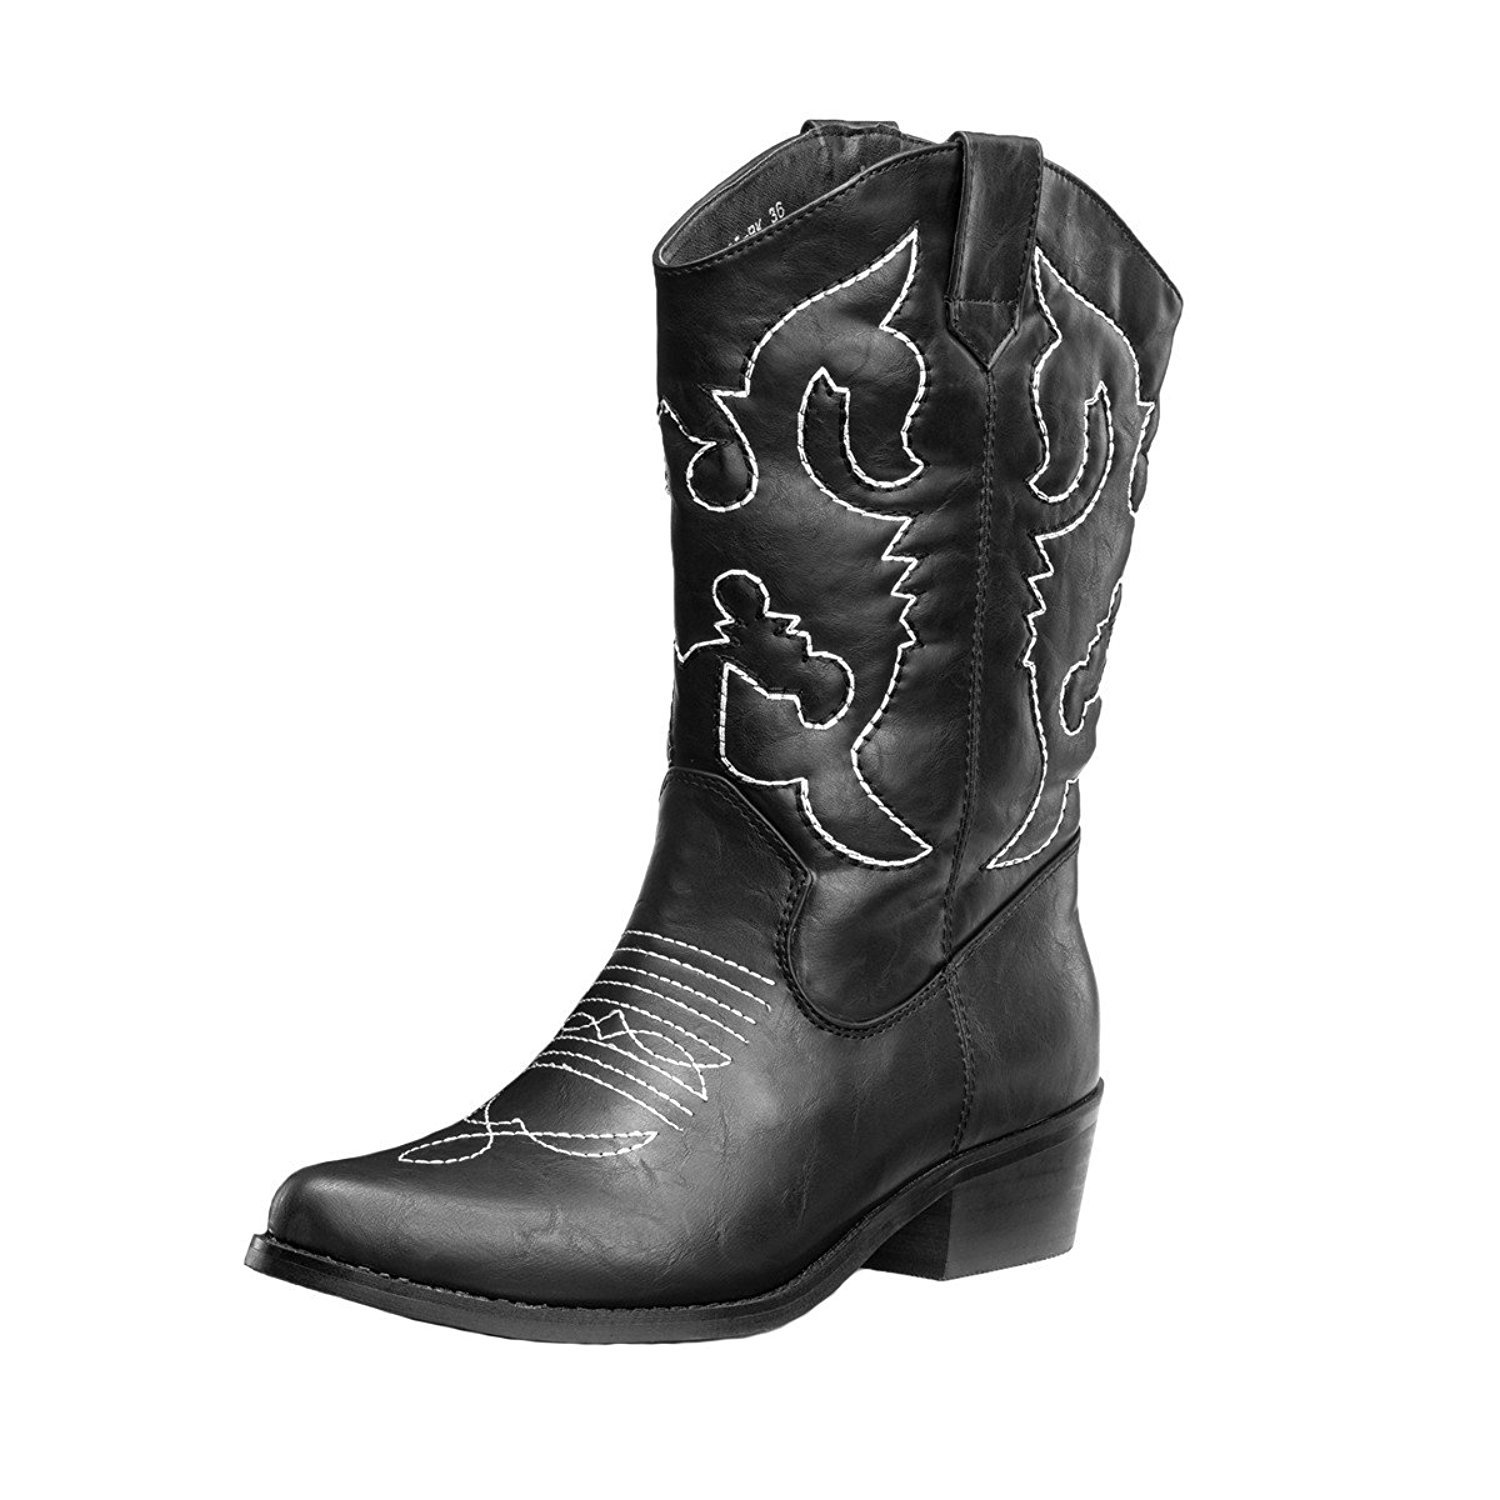 SheSole Women's Western Cowgirl Cowboy Boots Black Size 6